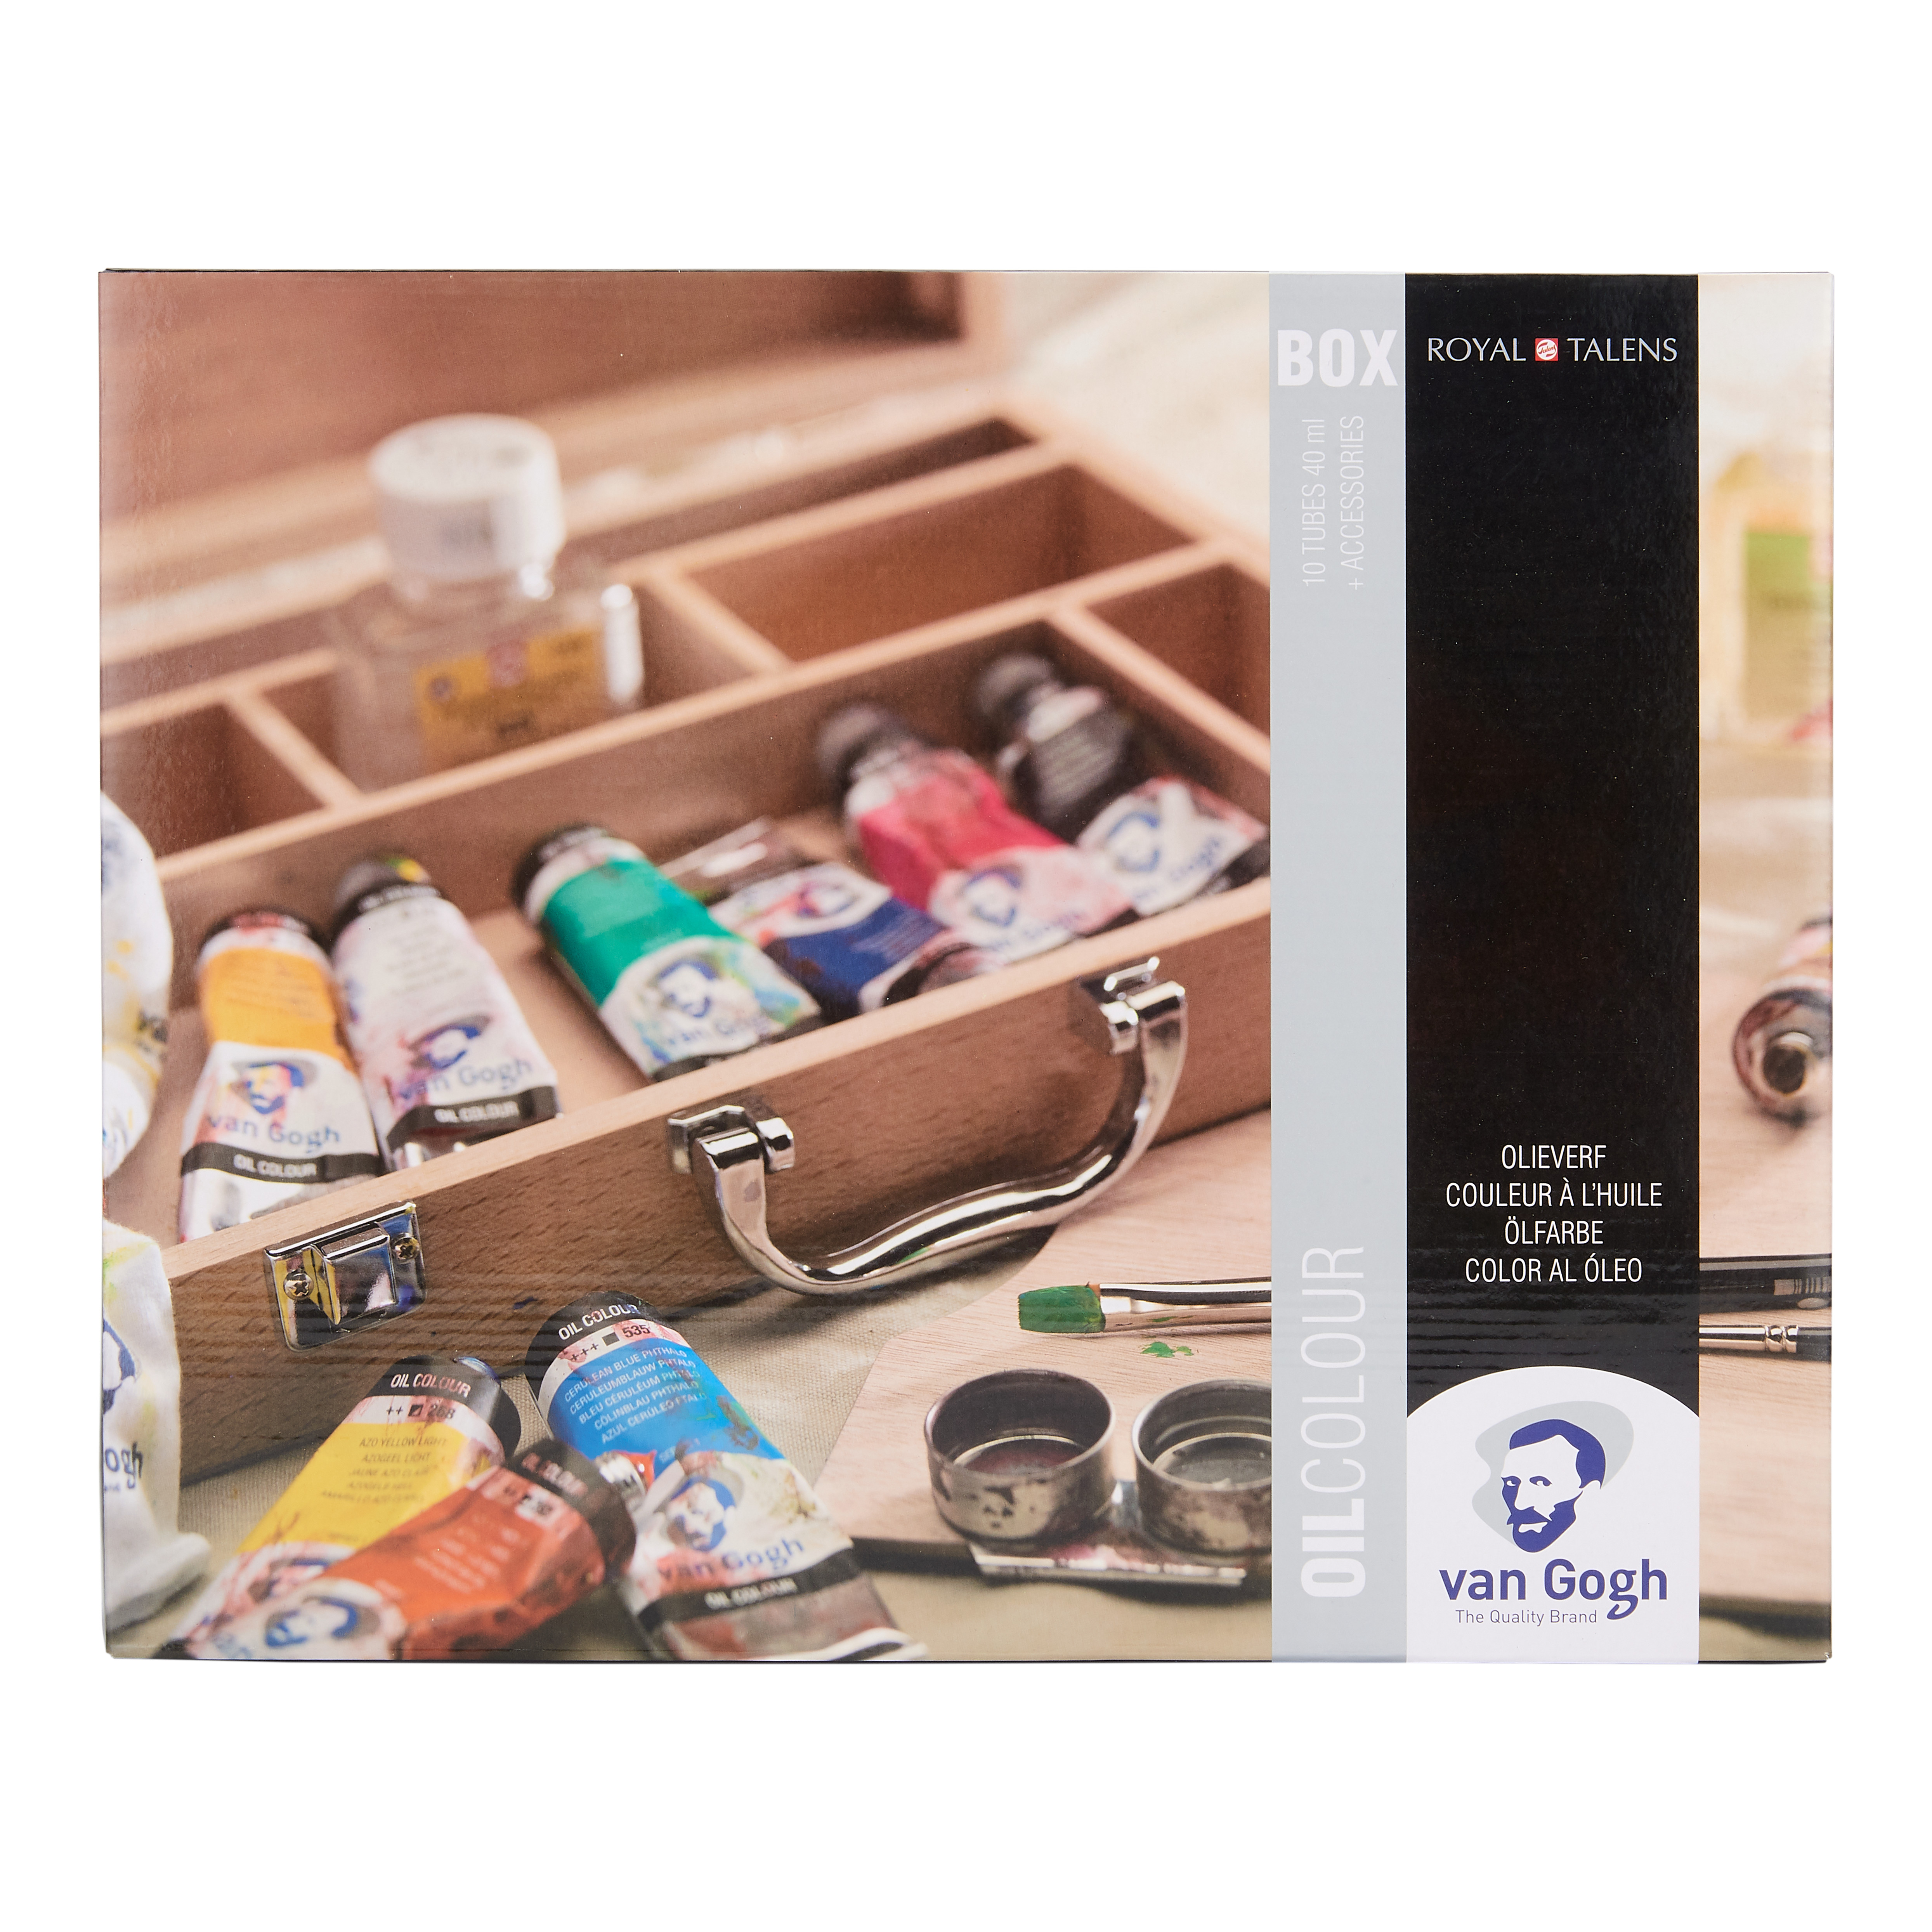 Van Gogh Oil Colour Wooden Box Set Basic with 10 Colours in 40ml Tube + Accessories